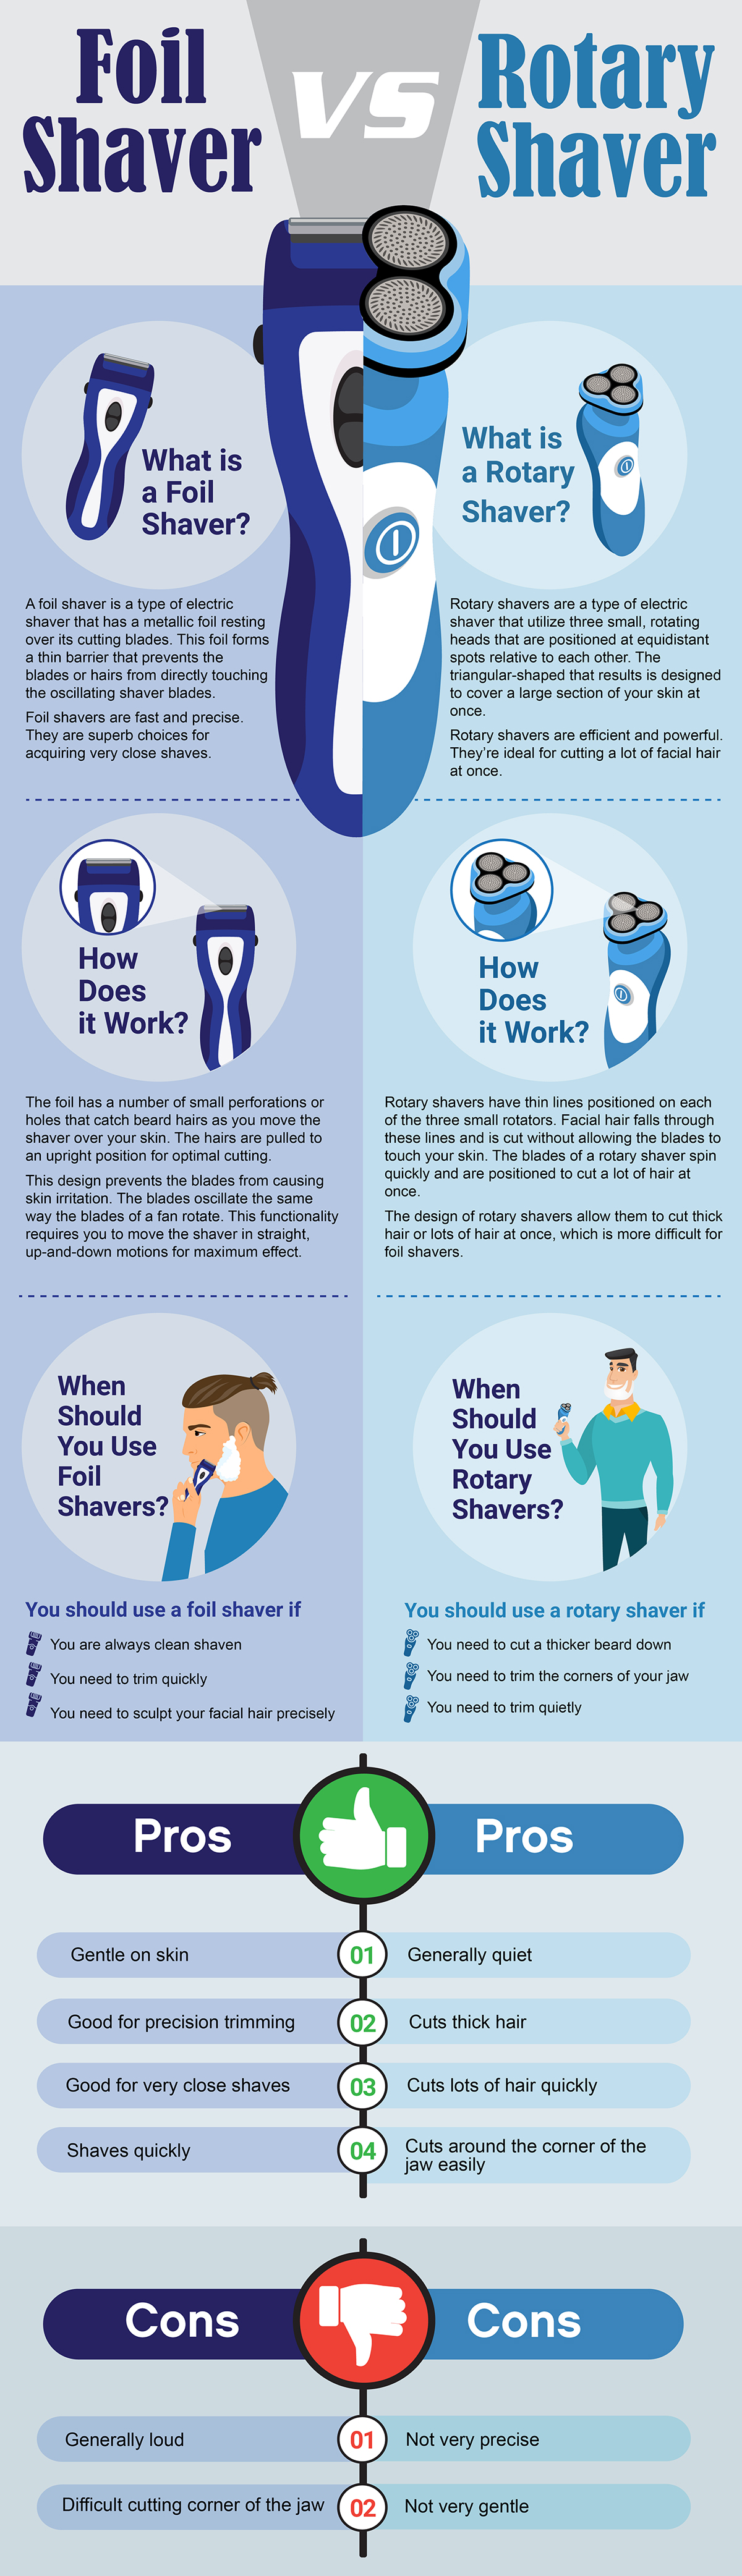 Foil vs Rotary Infographic